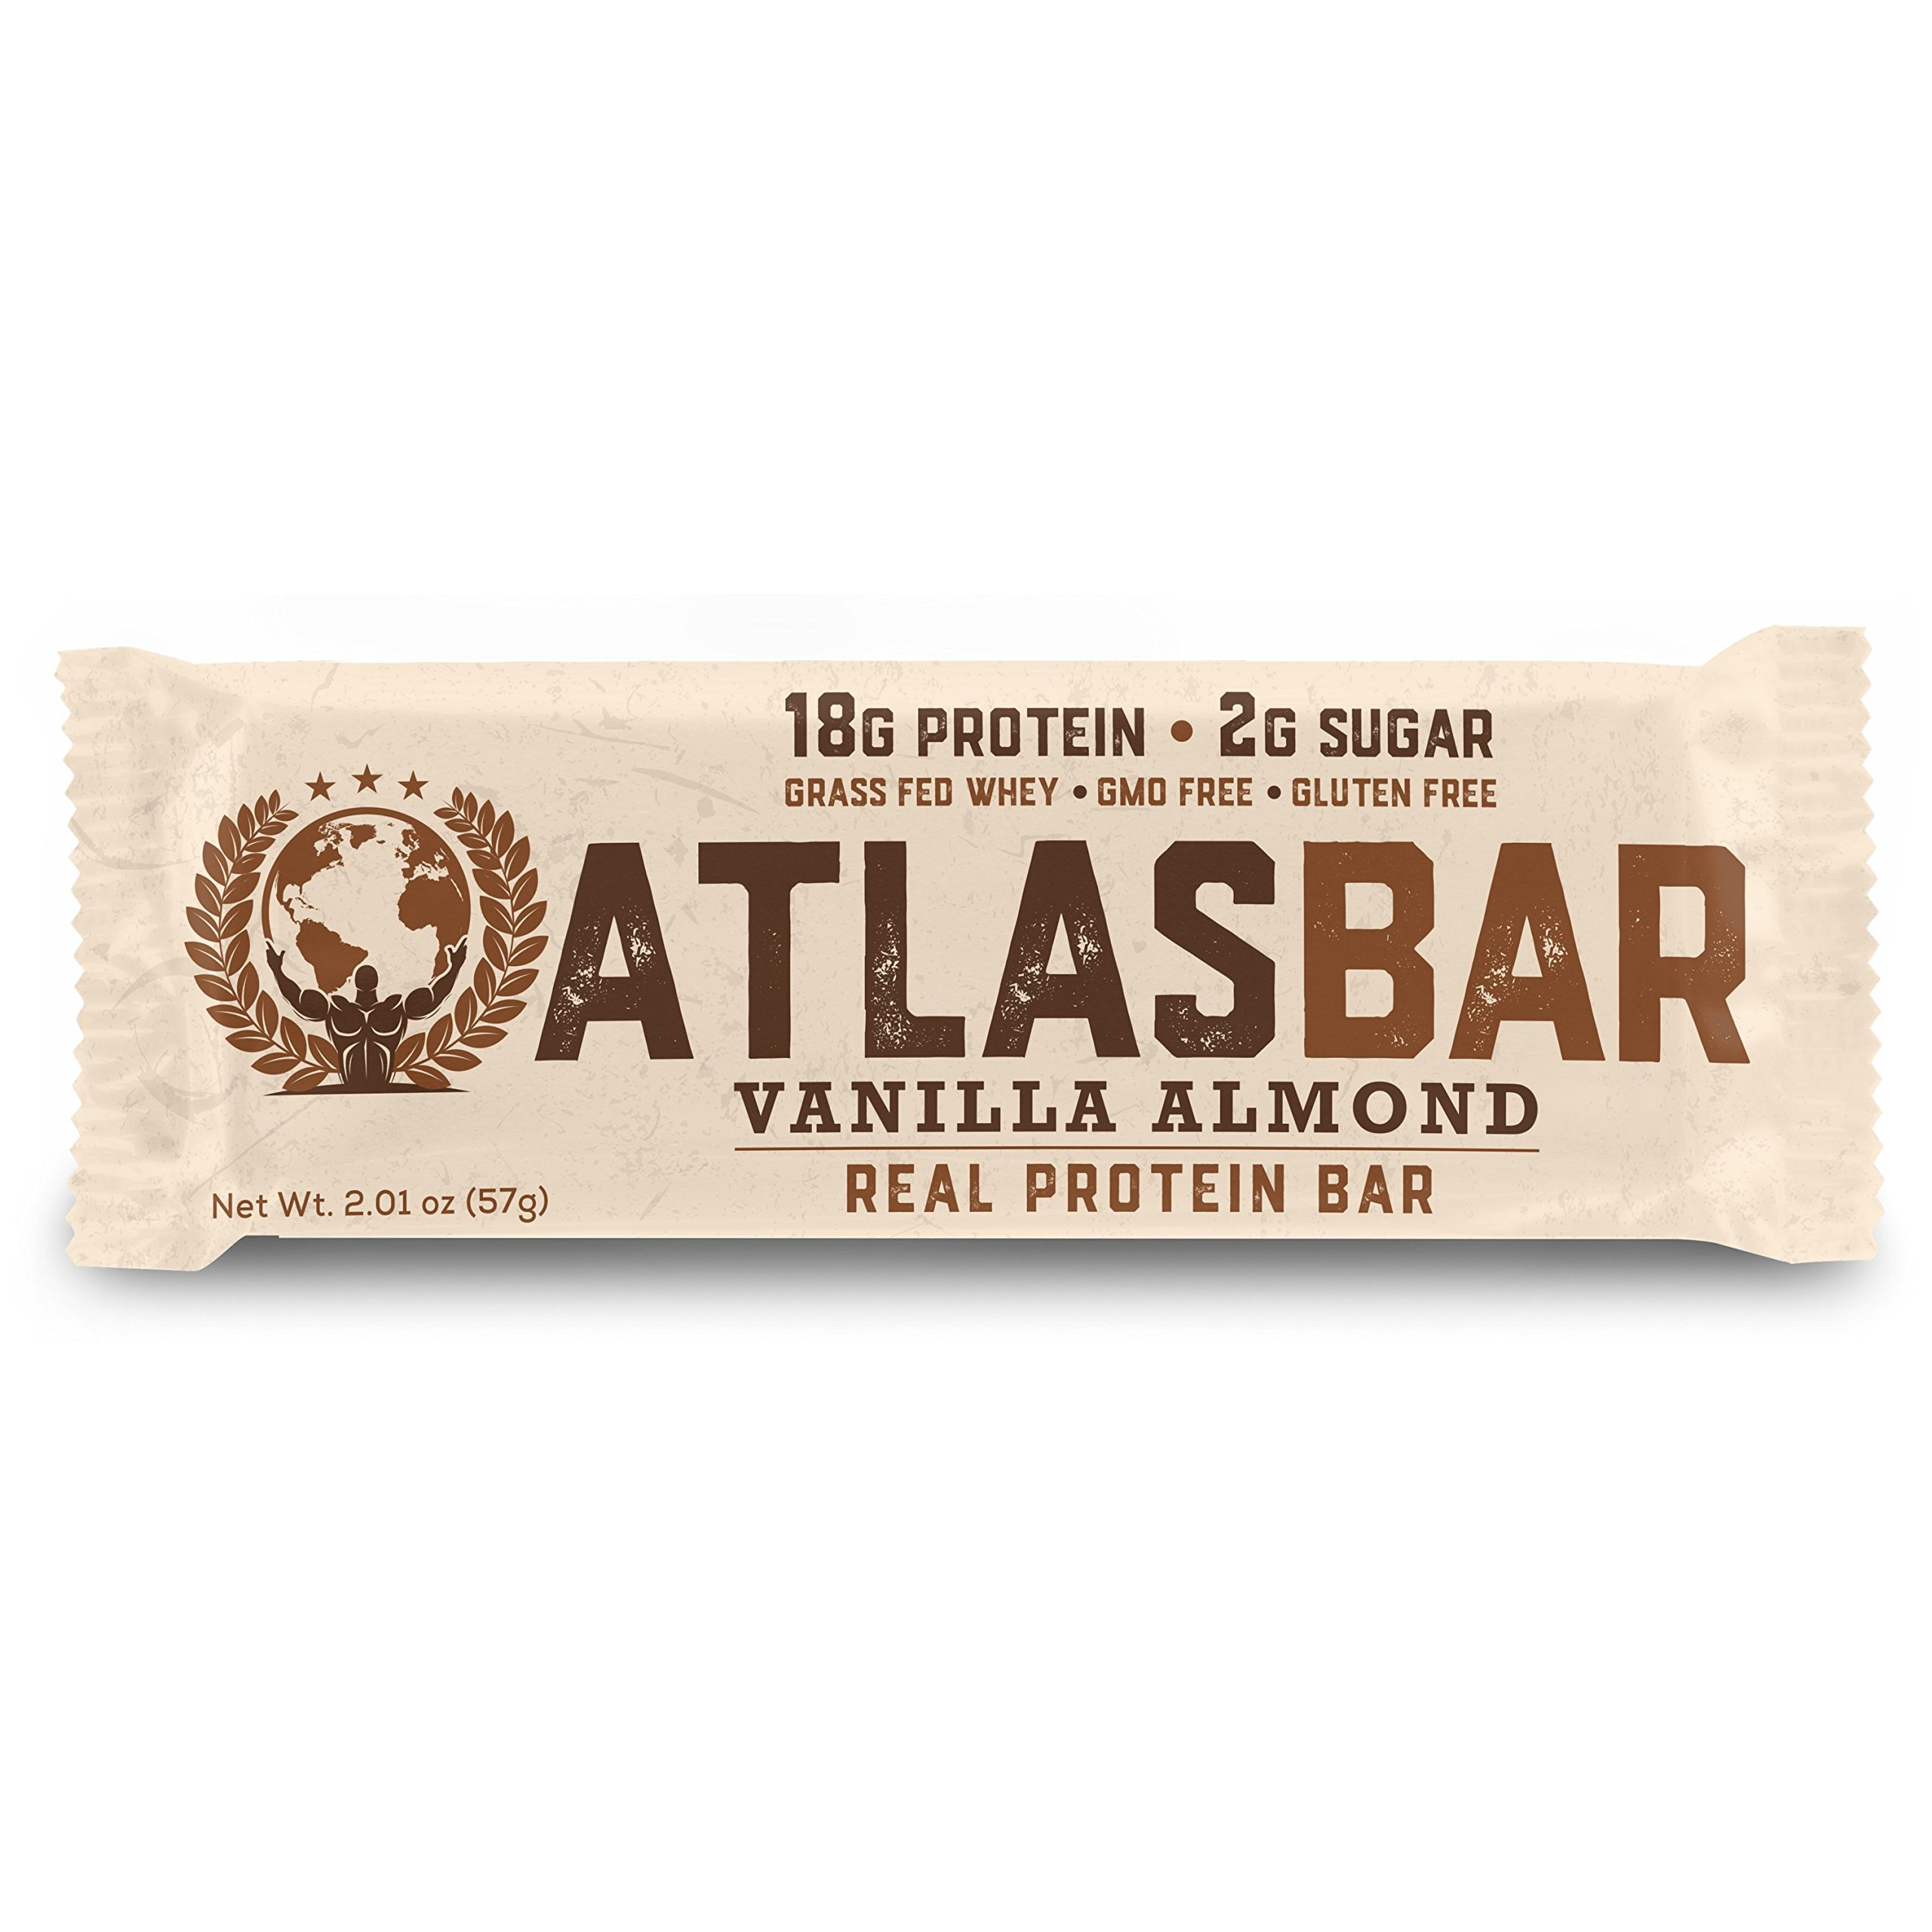 Atlas Bar - Keto/Paleo/Low Carb/All Natural Protein Bar, Vanilla Almond, 2.01 Ounce (12-Pack) — Grass Fed Whey, Low Sugar, All Natural, Gluten Free, Soy Free, and GMO Free